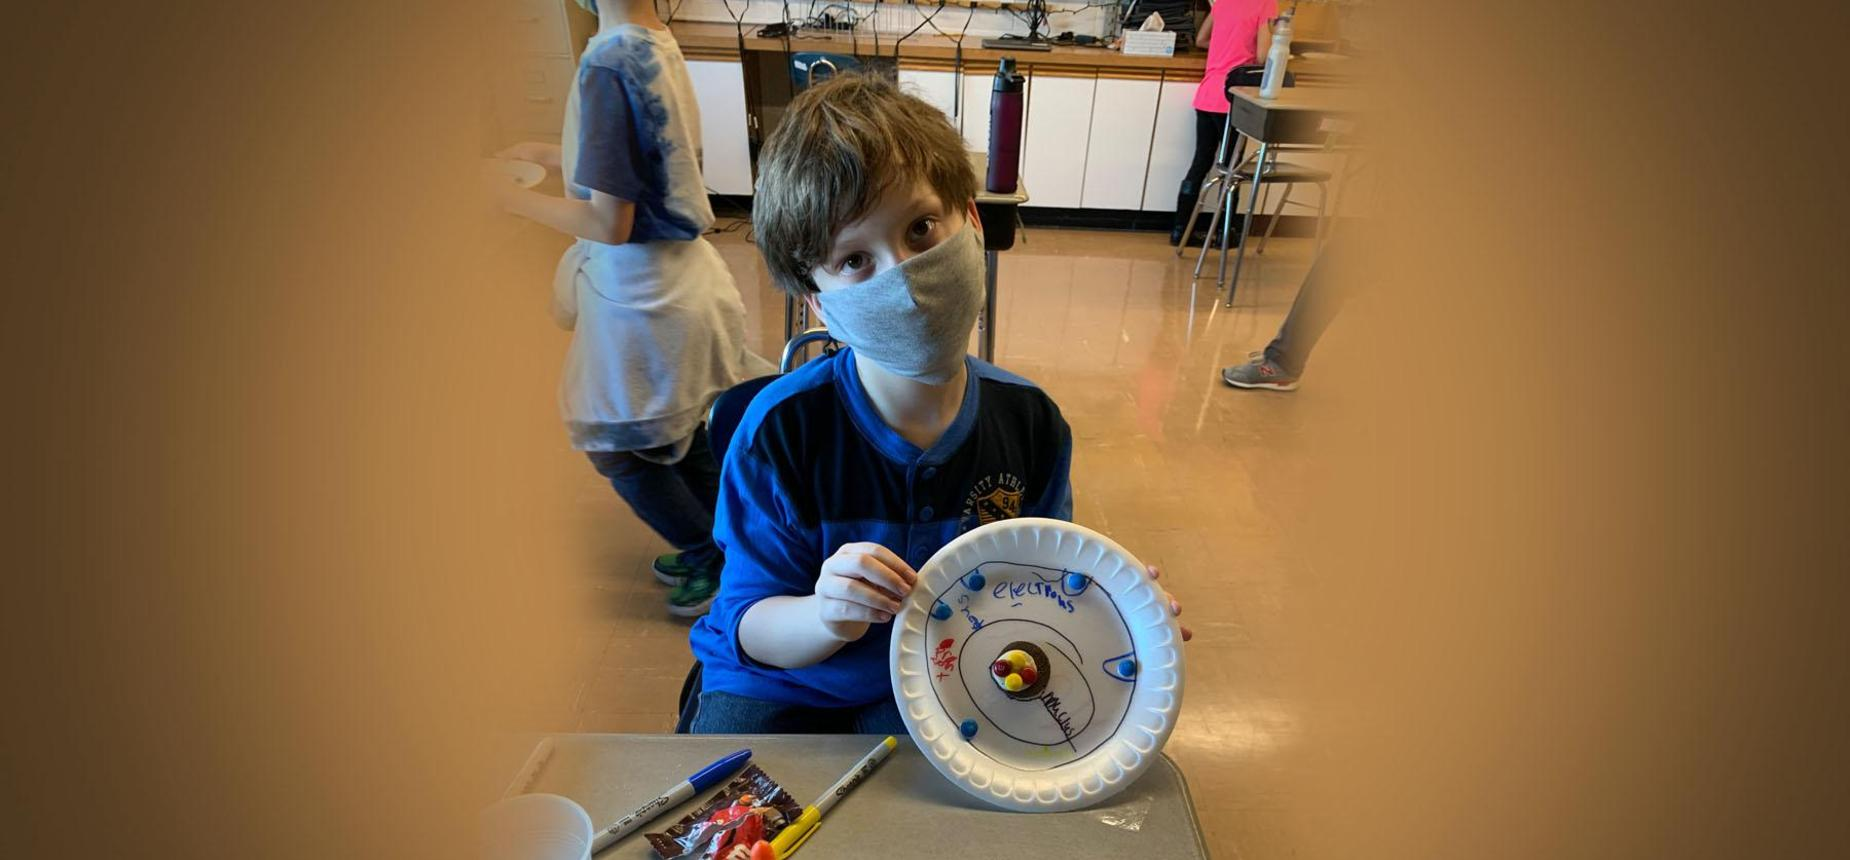 4th grade student creating atom models with food